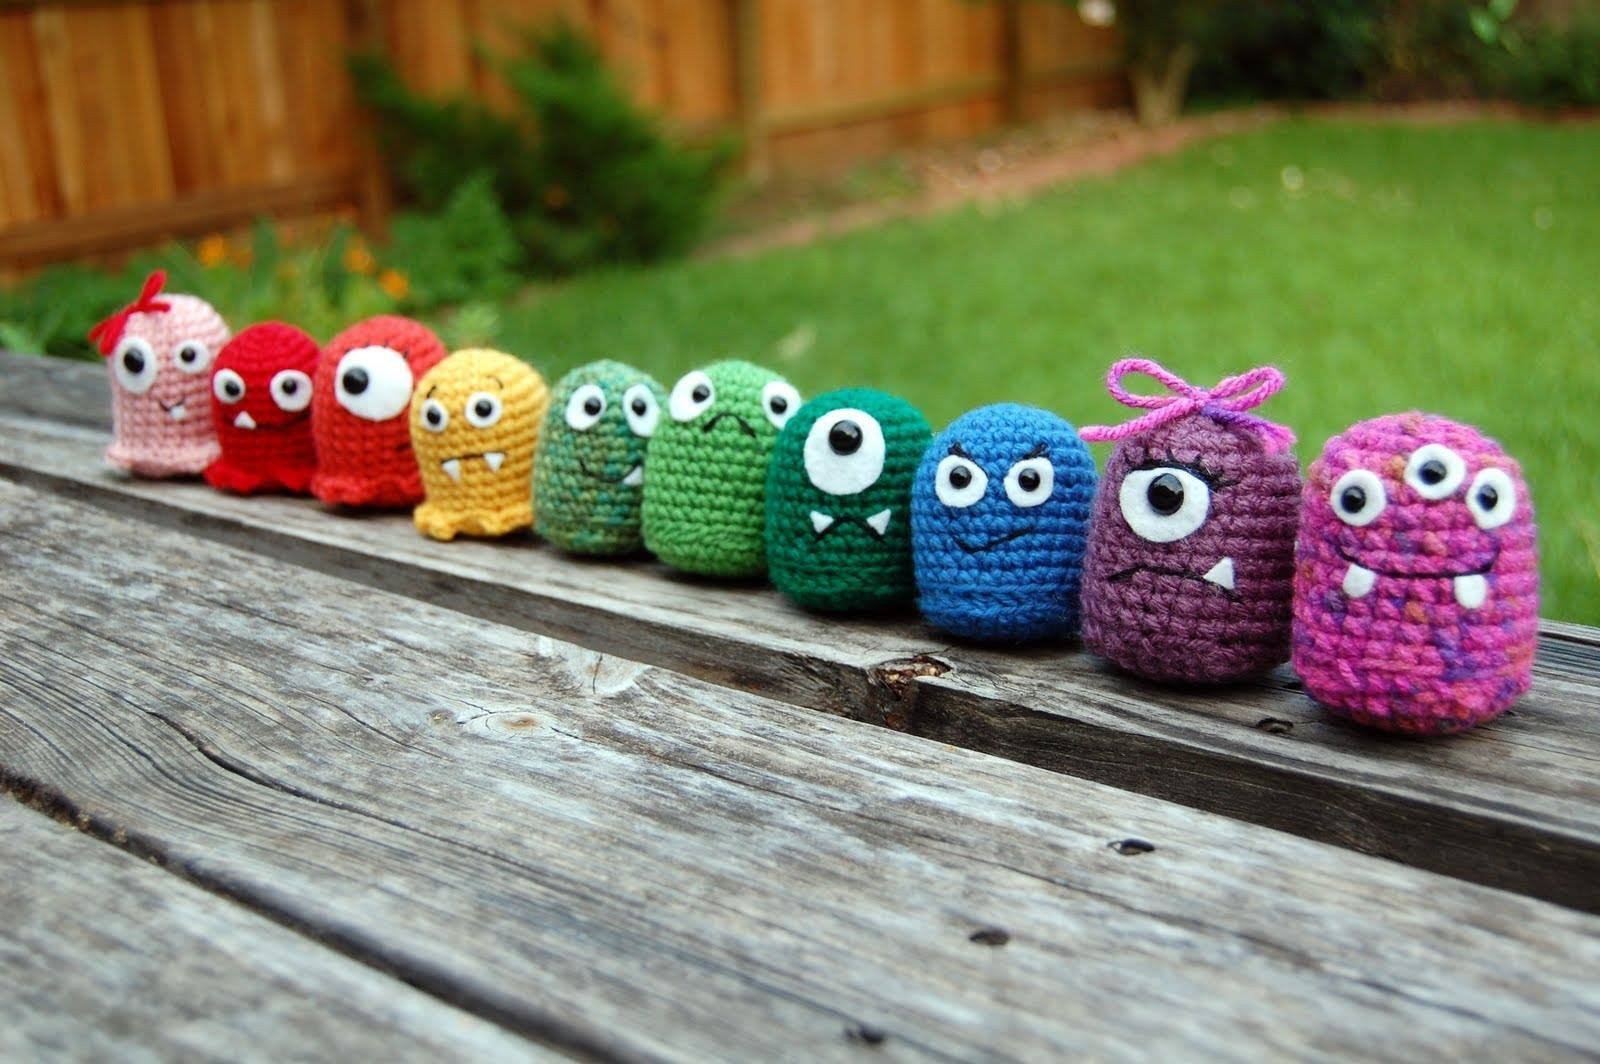 Crochet Amigurumi Baby Monsters with CraftyisCool. Magic Ring tutorial